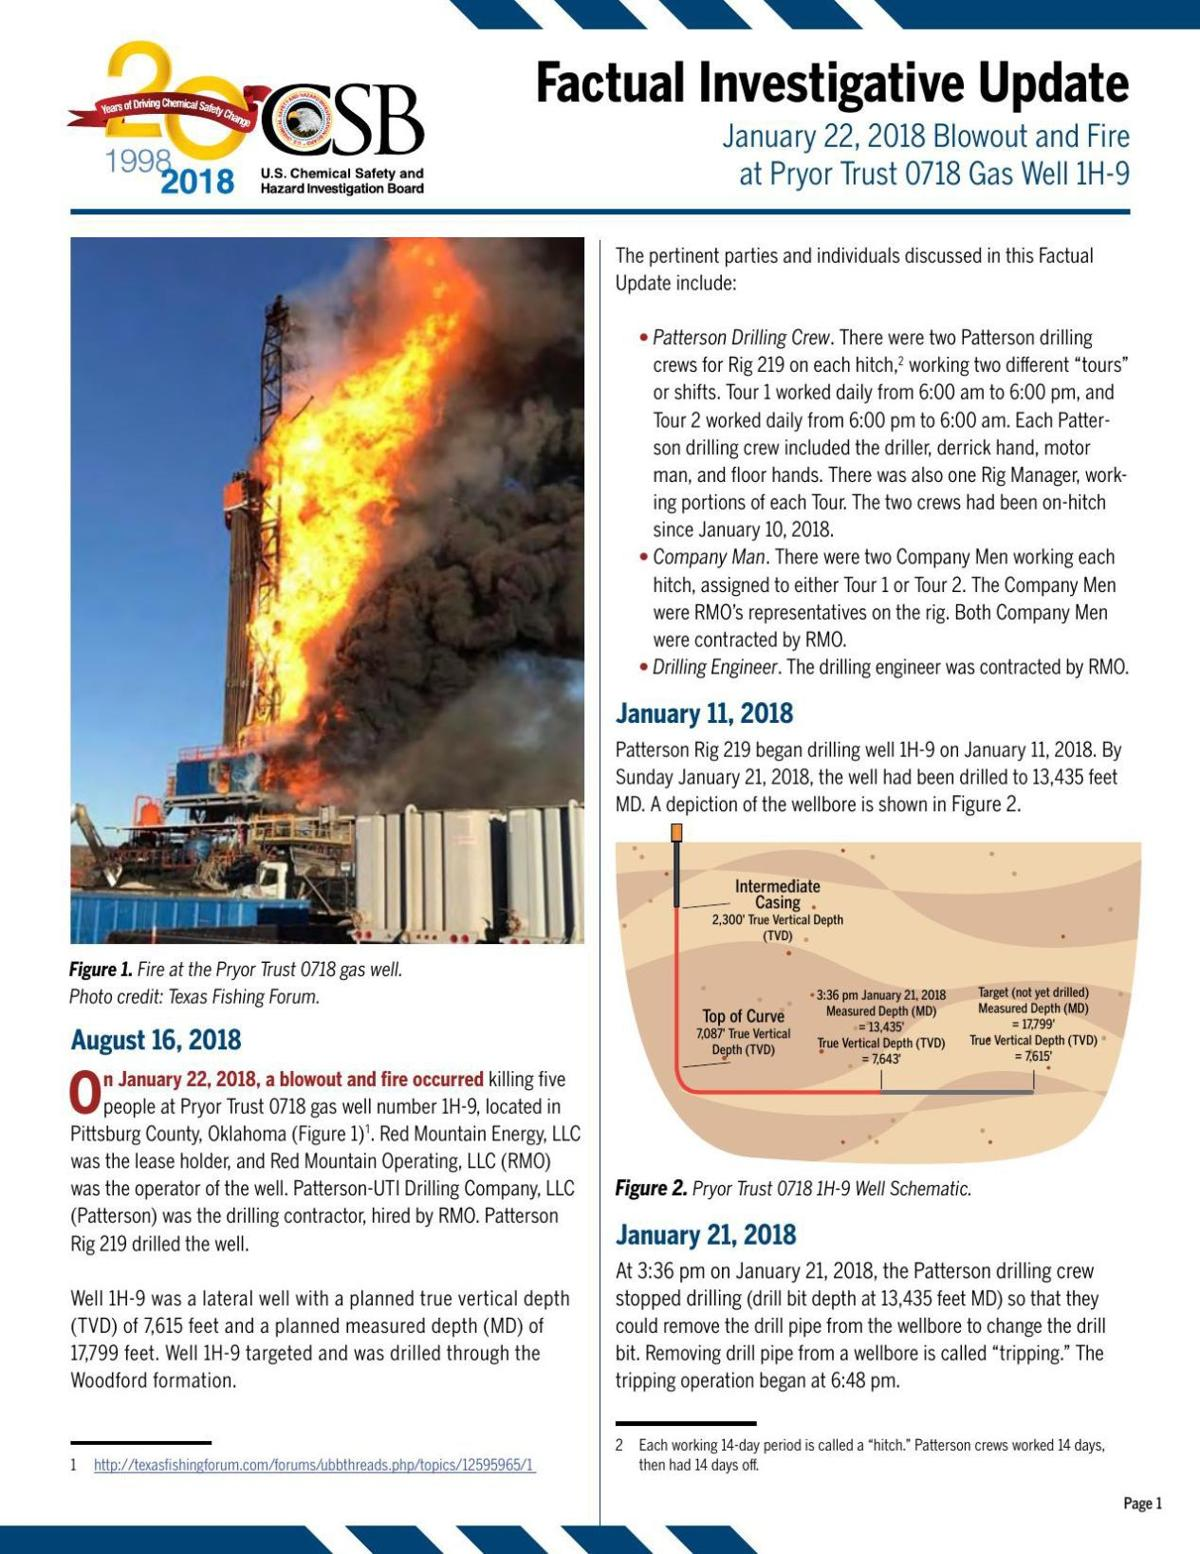 Chemical Safety Board Factual Update On Quinton Natural Gas Rig Well Schematic Download Pdf Deadly Blowout